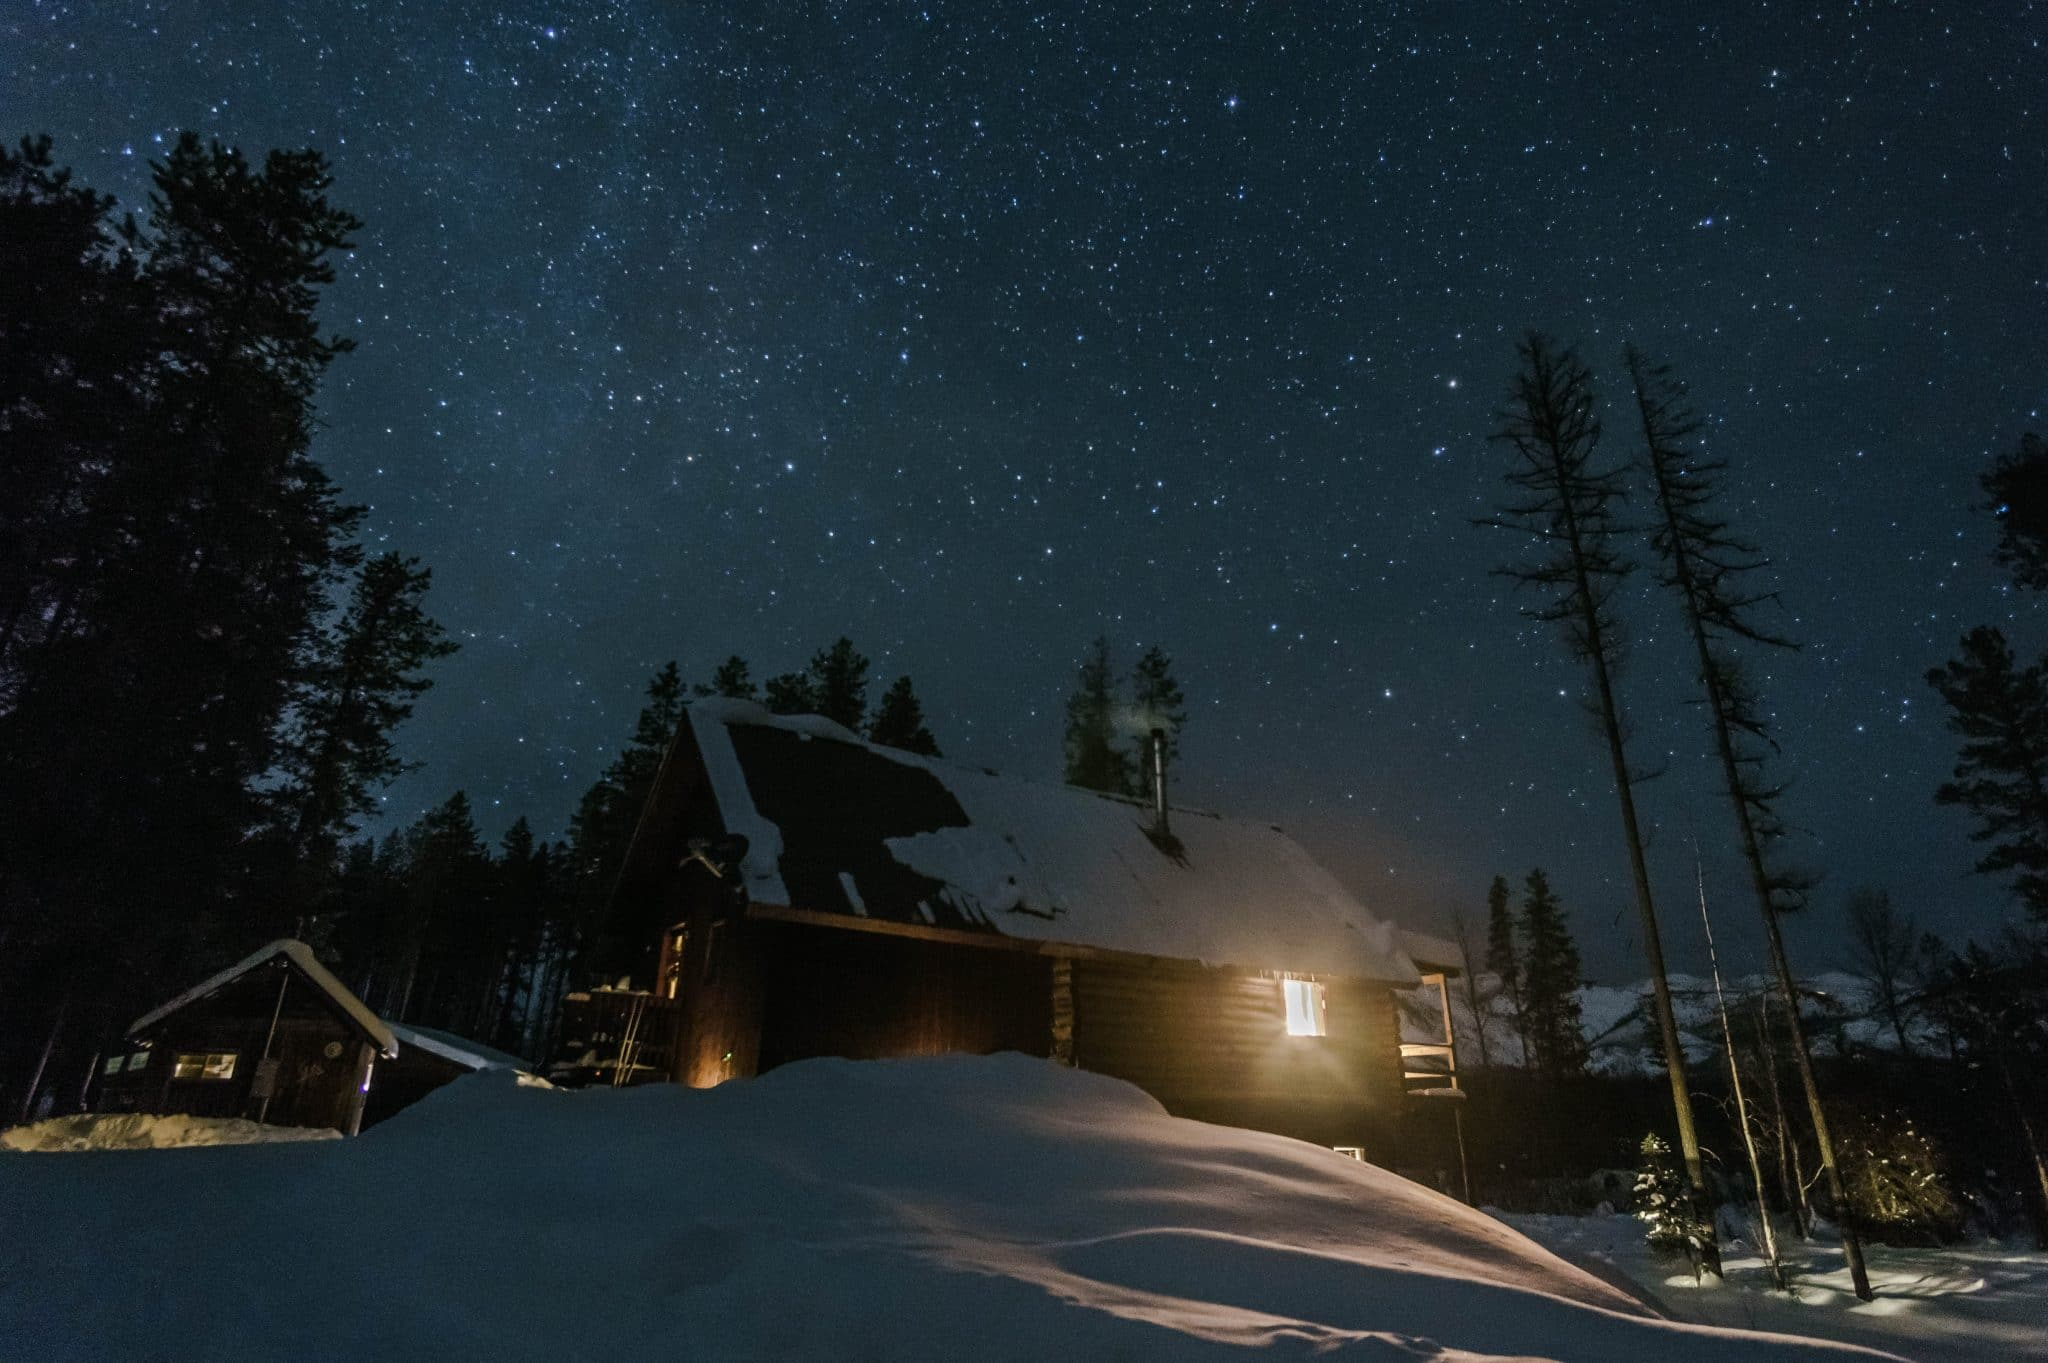 Cozy cabin under the stars outside of Whitefish, MT.